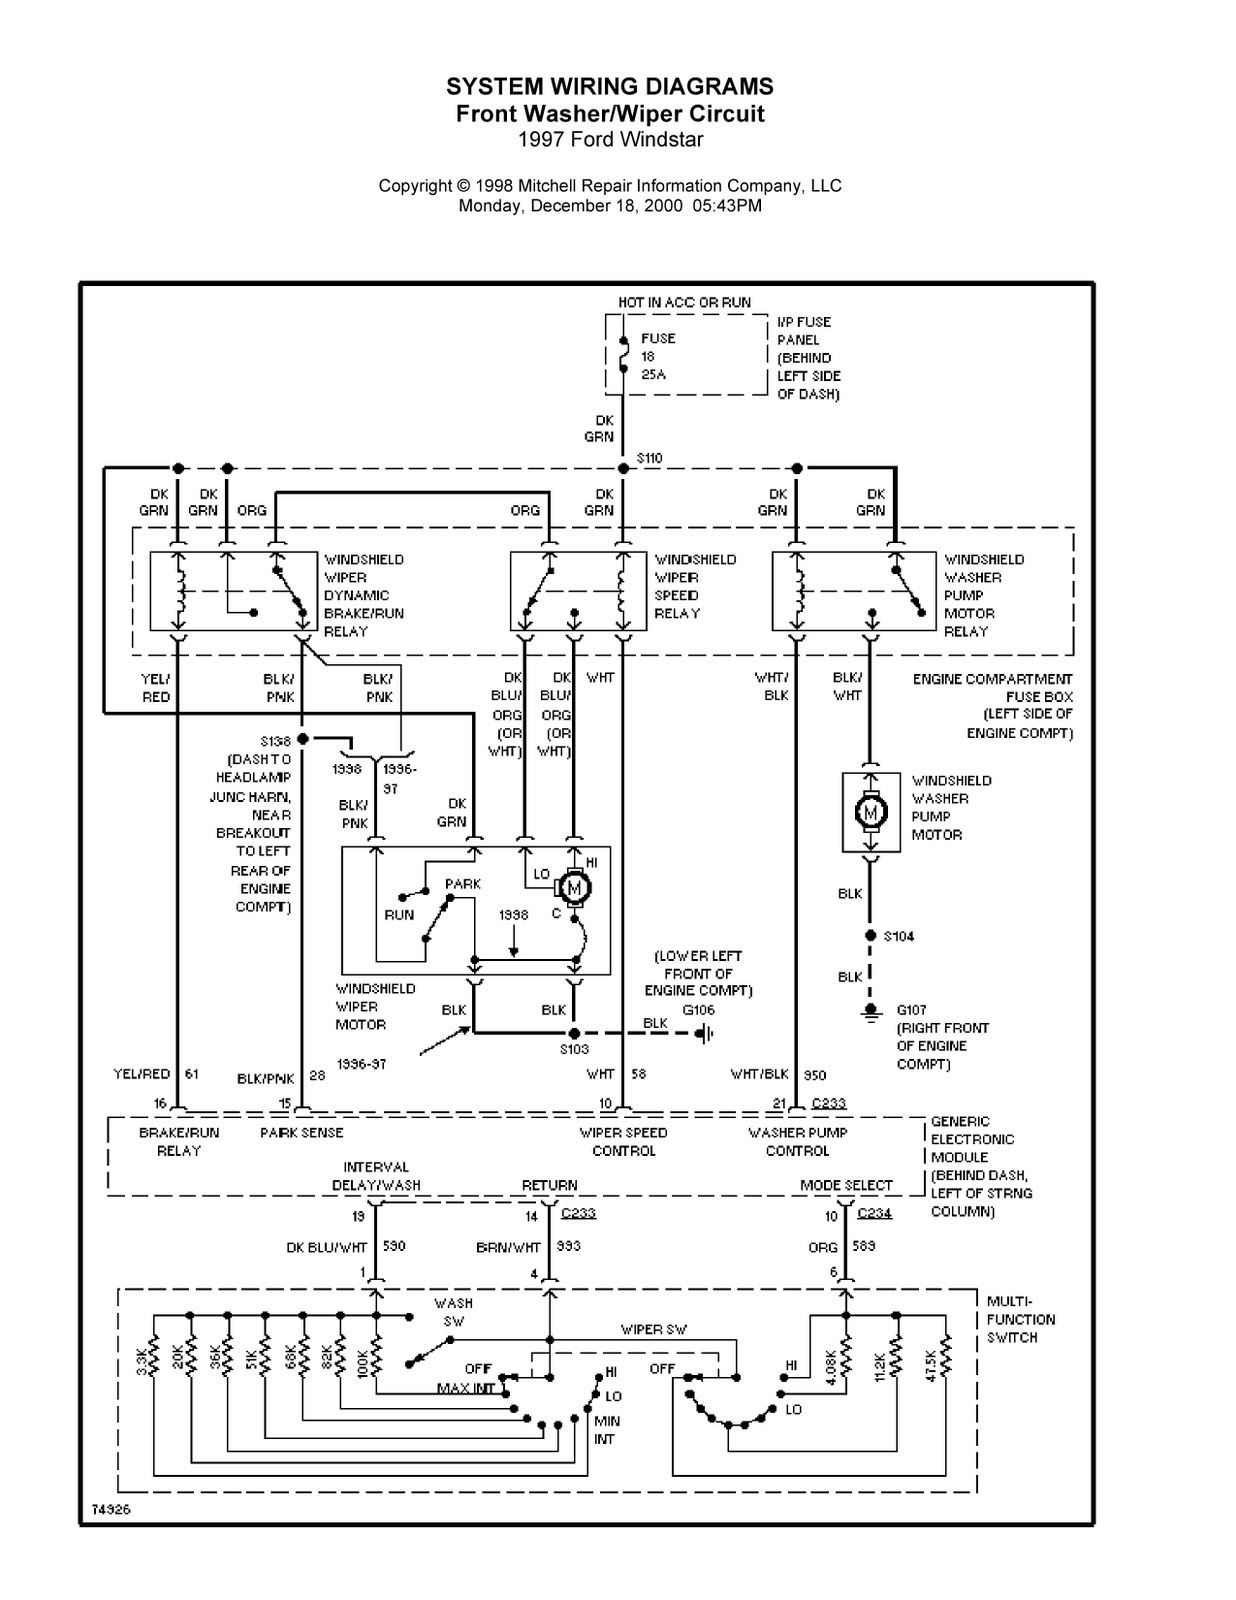 0051 1997 ford windstar complete system wiring diagrams wiring 1998 Ford Windstar Problems at edmiracle.co